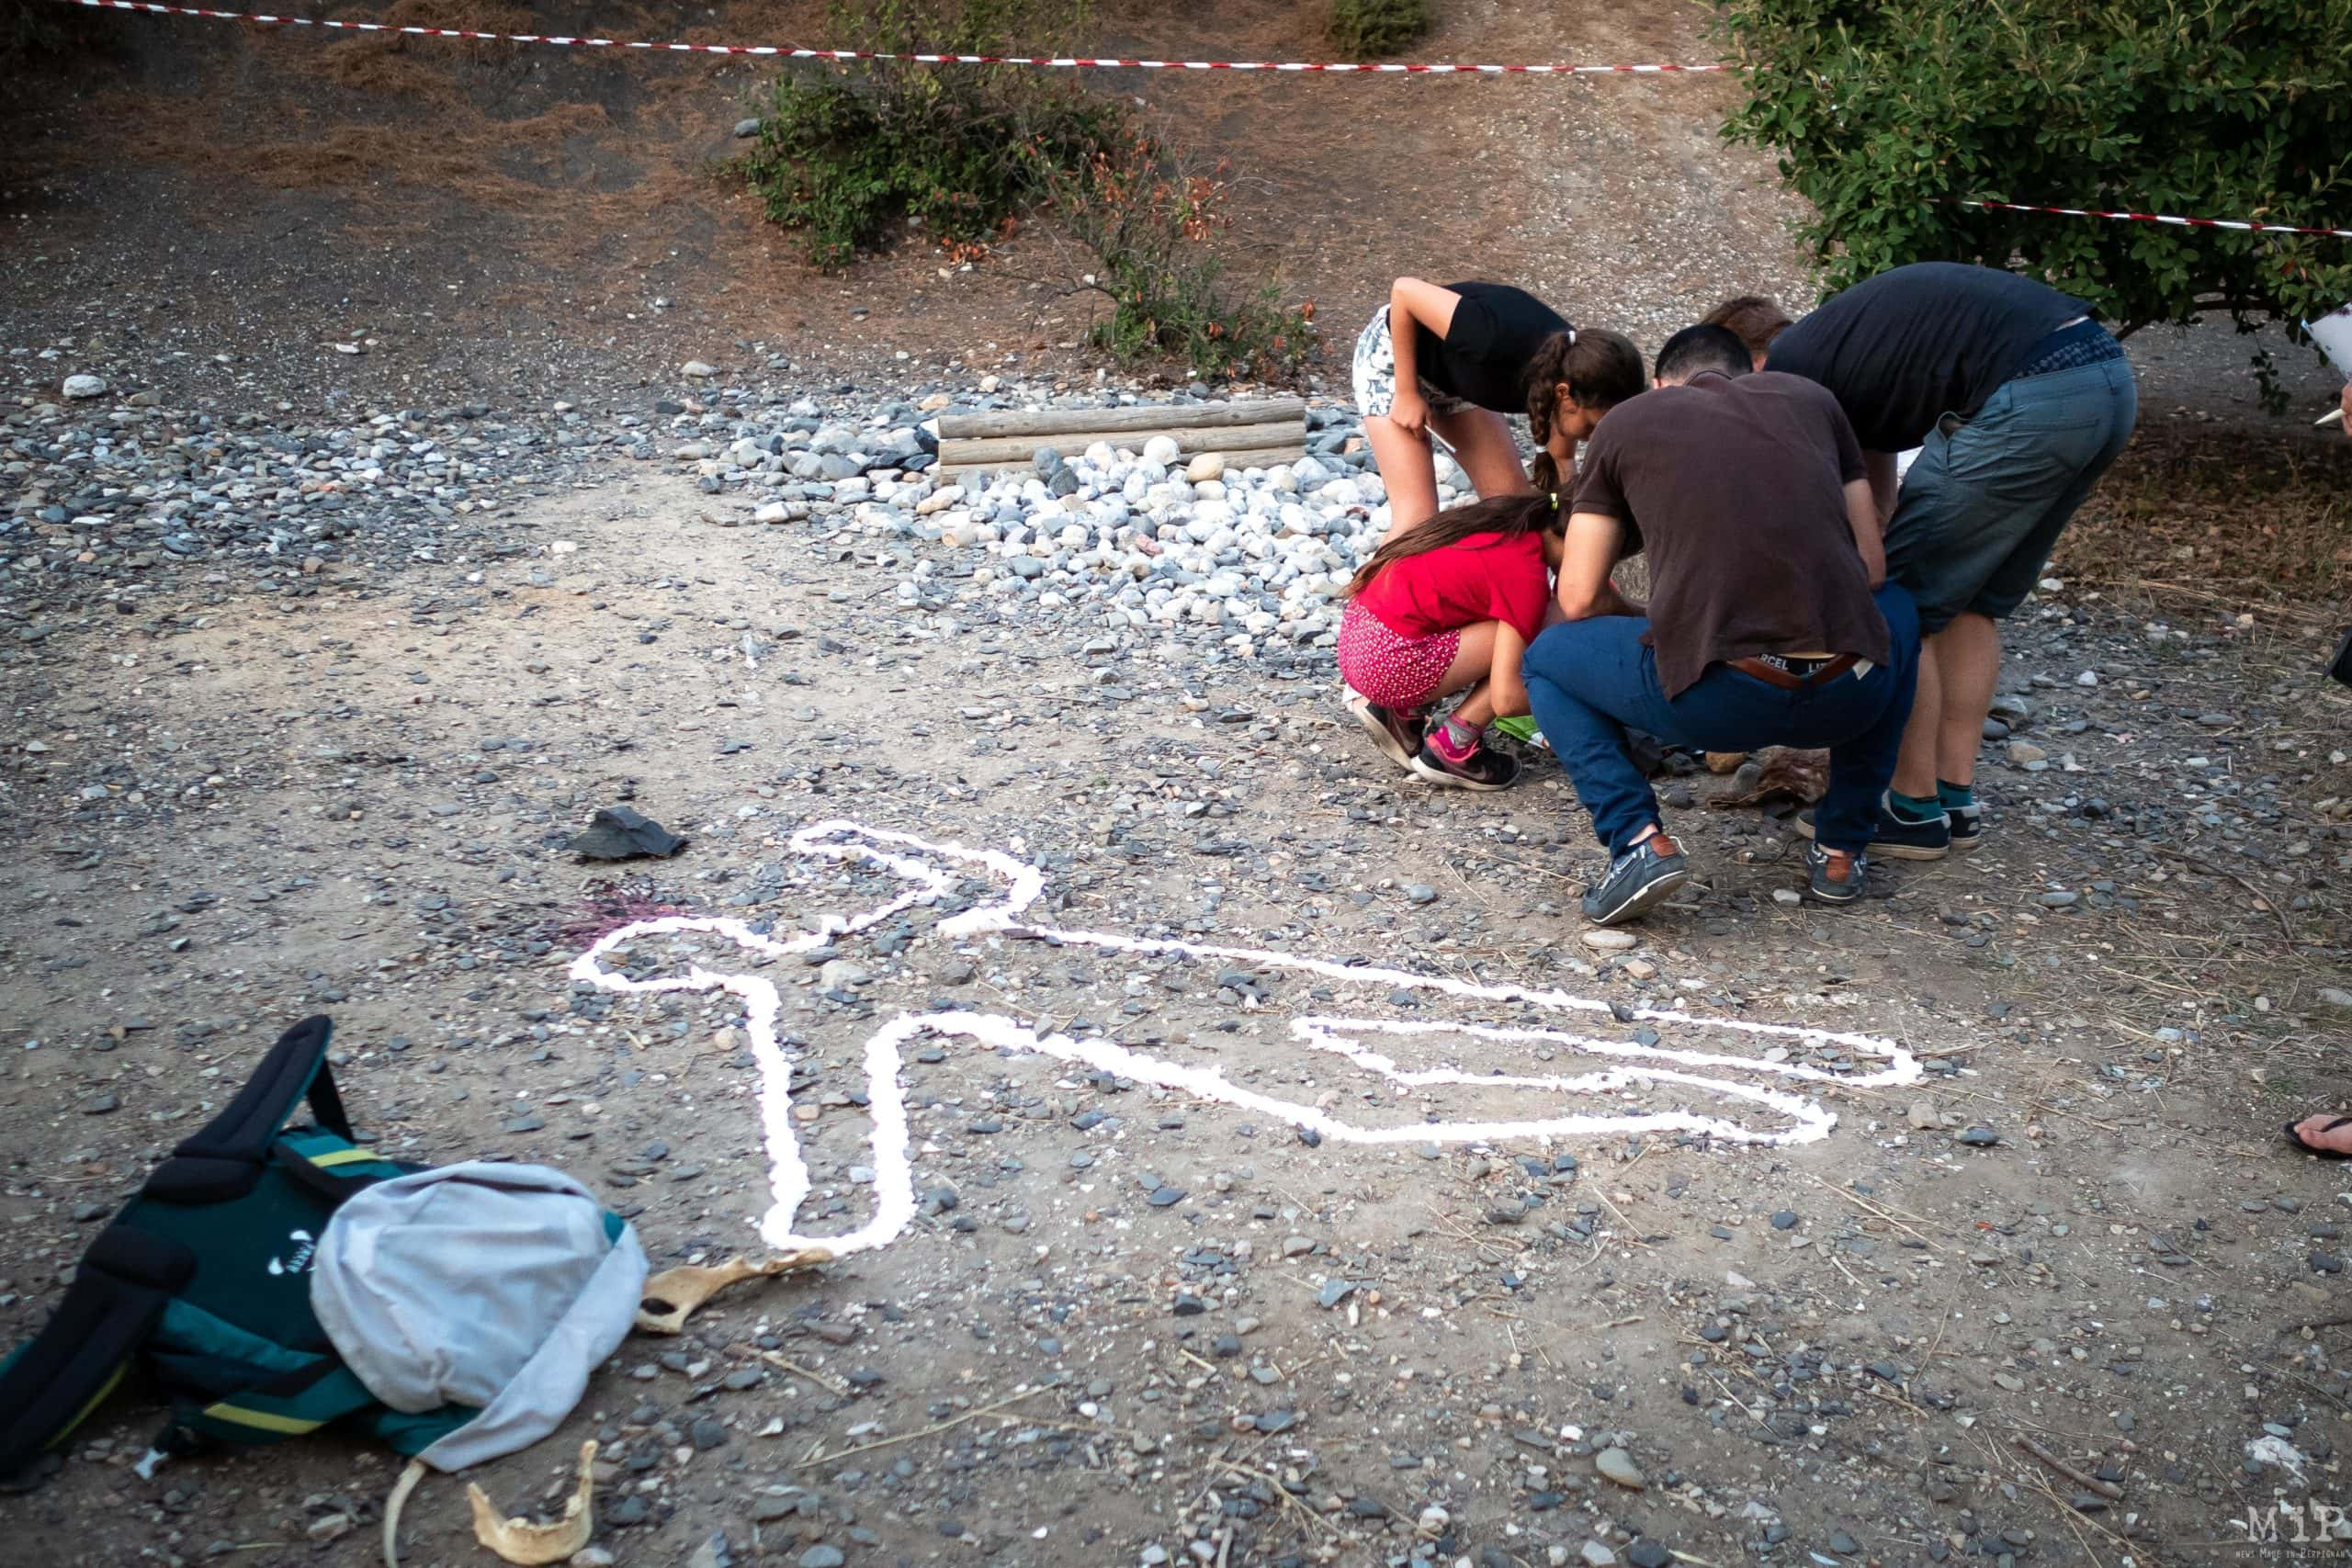 France, Tautavel, 2019-07-31. Illustration, Murder Party at the Museum of Prehistory in Tautavel. Photograph by Arnaud Le Vu / Hans Lucas.France, Tautavel, 2019-07-31. Illustration, soiree Murder Party au musee de la prehistoire de Tautavel. Photographie de Arnaud Le Vu / Hans Lucas.